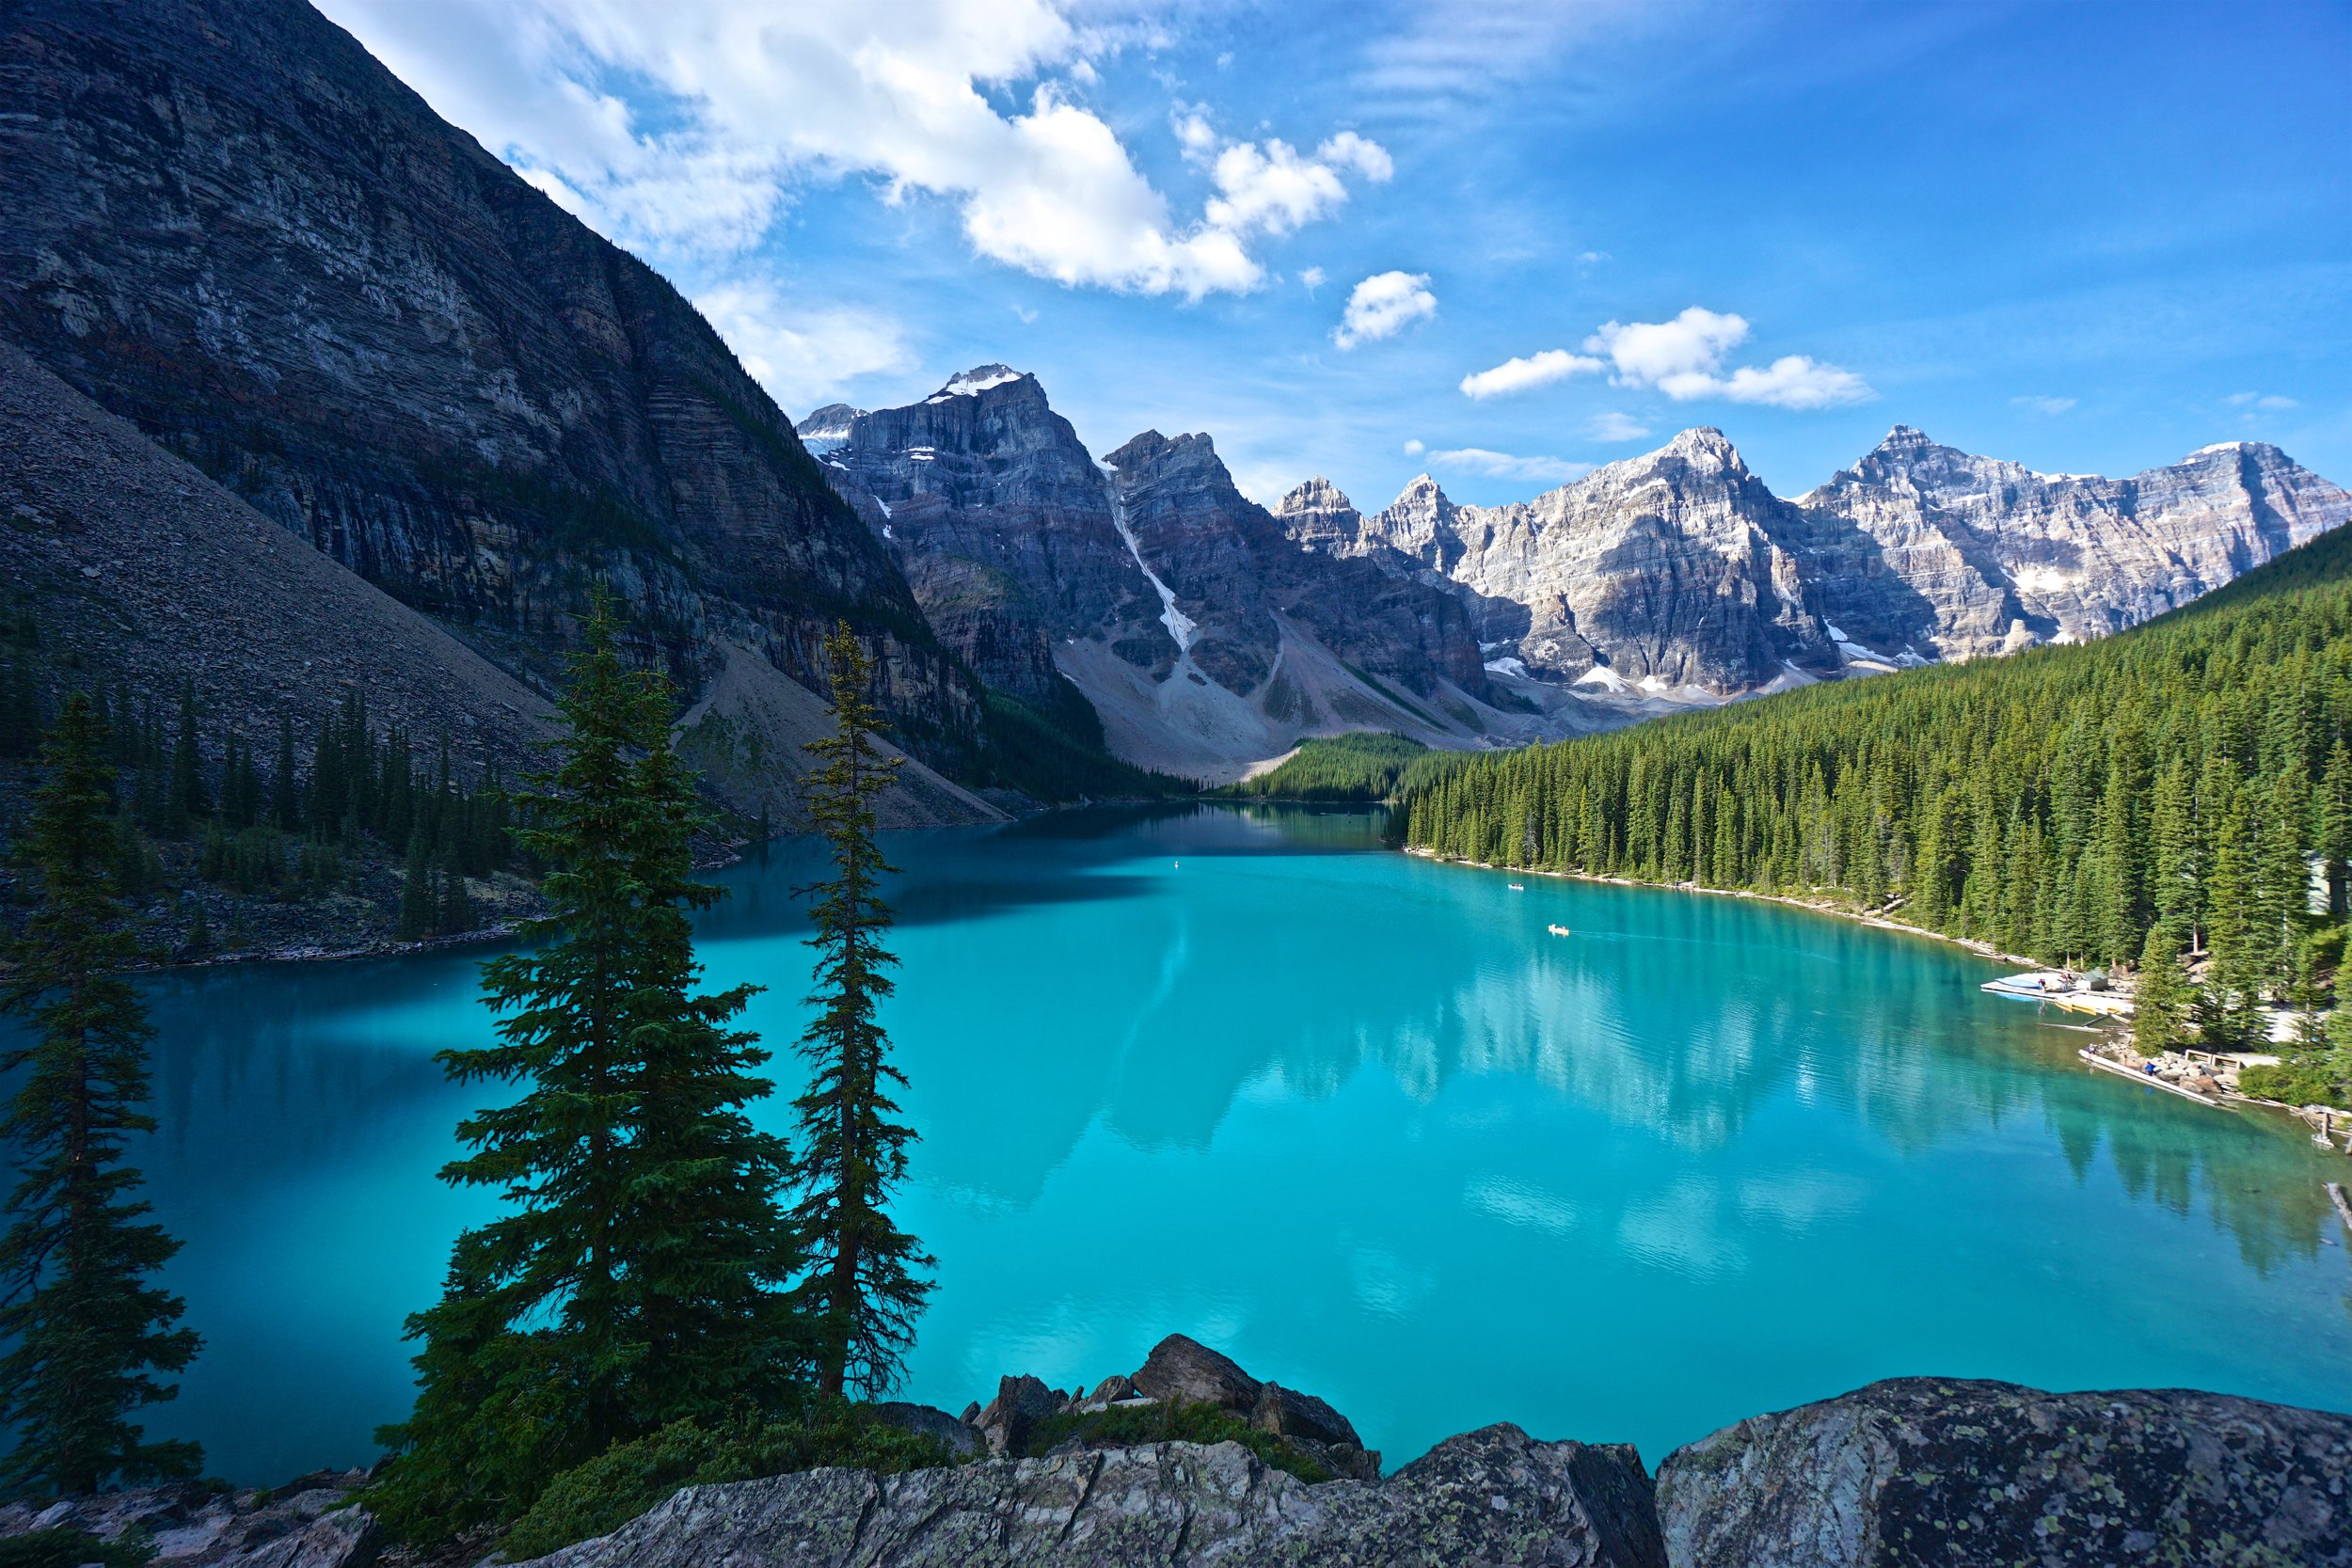 Moraine Lake - Banff National Park, Alberta - Sept 2016.jpg